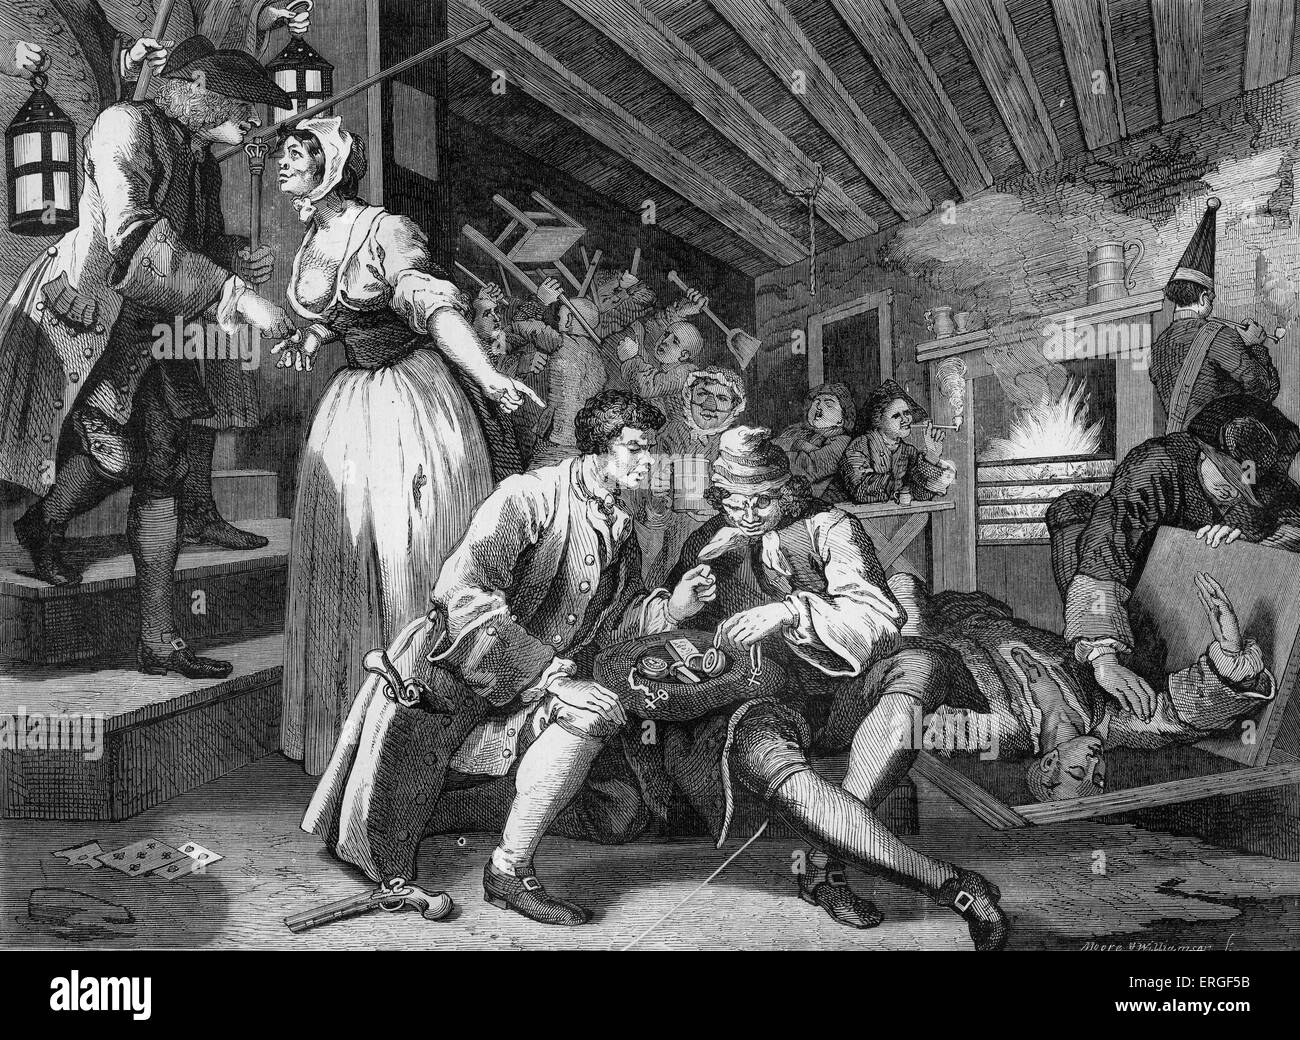 Industry and Idleness by William Hogarth. Plate IX - Tom Idle betrayed by his mistress. WH: English artist - 1697 - Stock Image